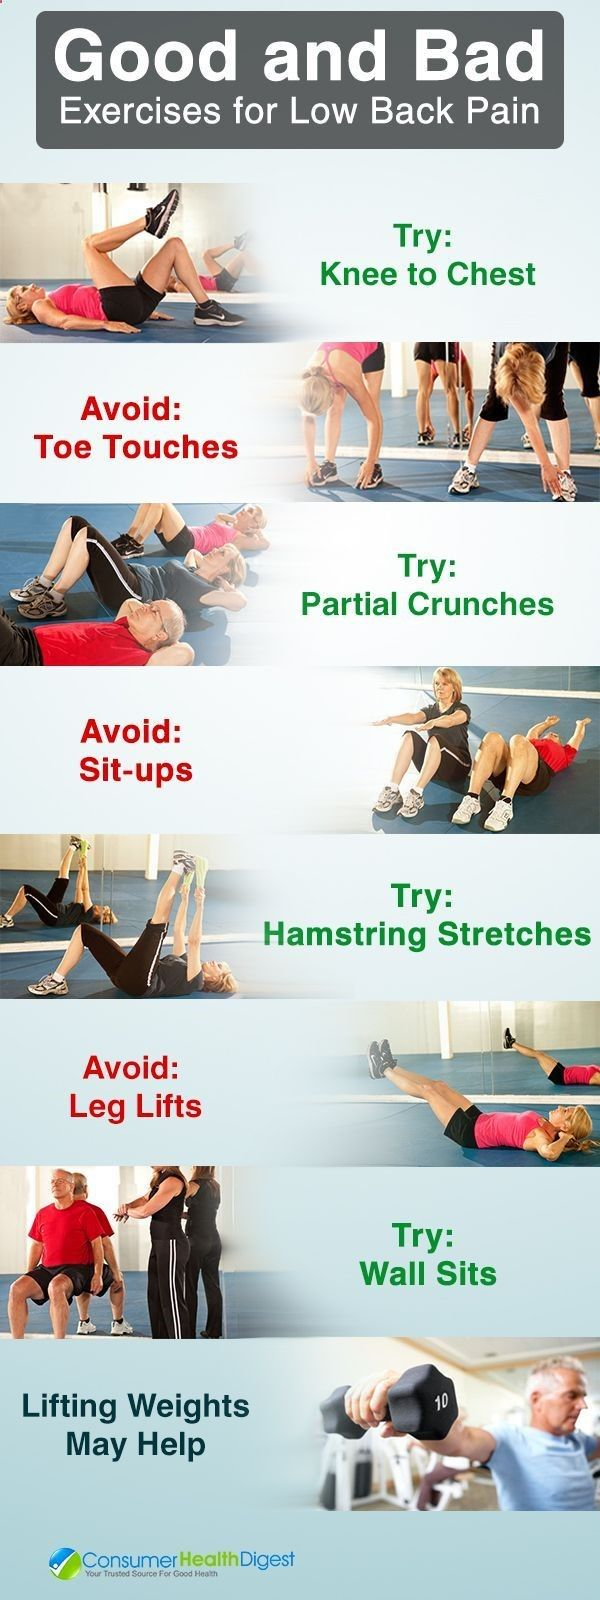 Excersices For Legs At Home and At The Gym - Causes and Treatment to Reduce #backpain   Exercises for lower back pain can strengthen back, stomach, and leg muscles. They help support your spine, relieving back pain. Always ask your health care professional before doing any exercise for back pain. - Strengthening our legs is an exercise that we are going to make profitable from the beginning and, therefore, we must include it in our weekly training routine